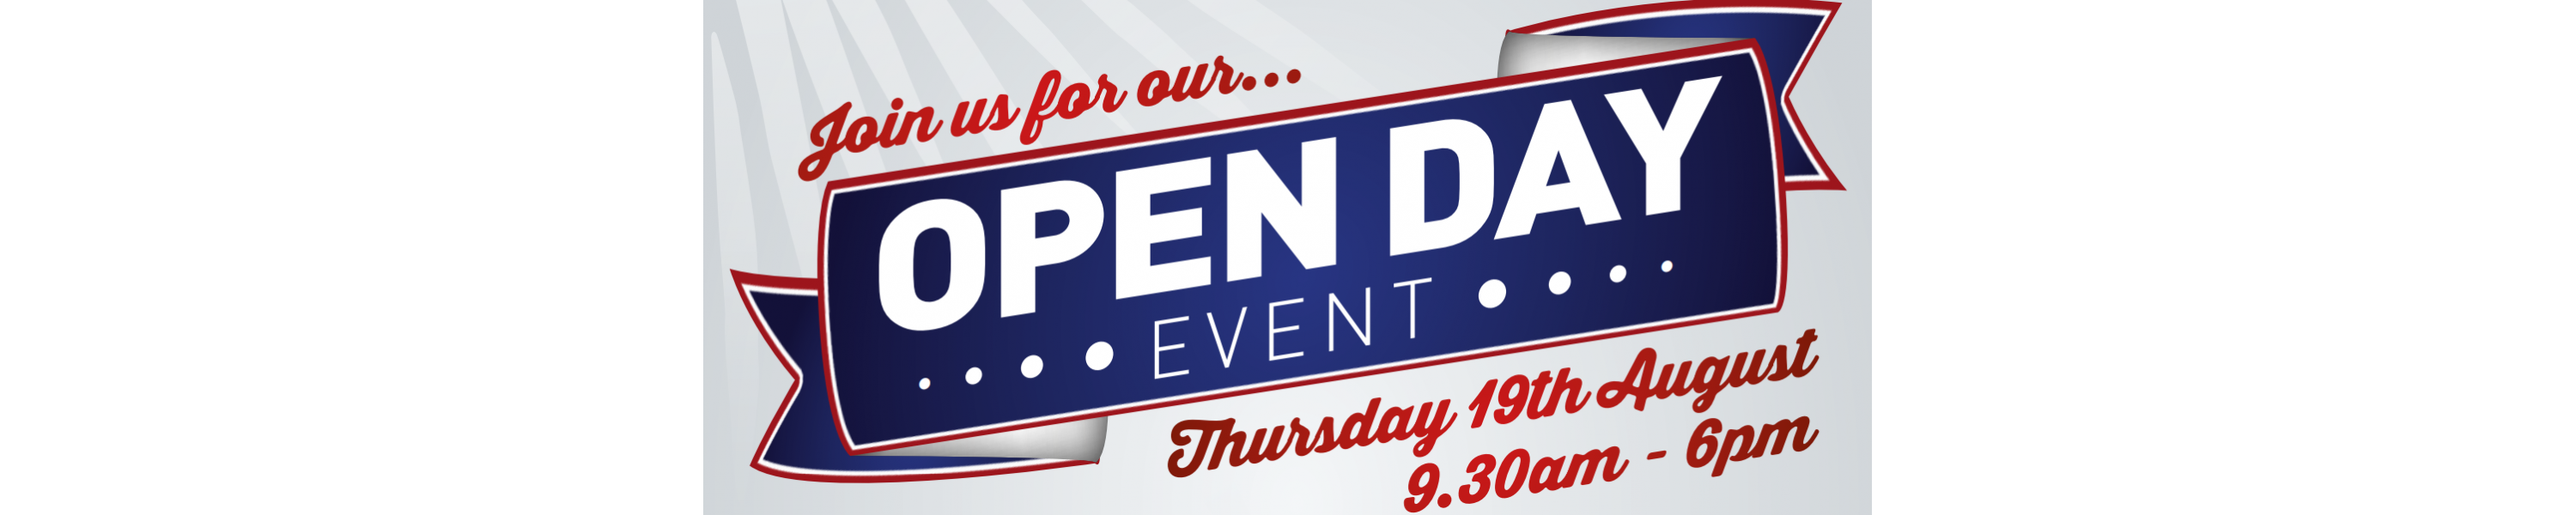 Open Day 19th August 2021